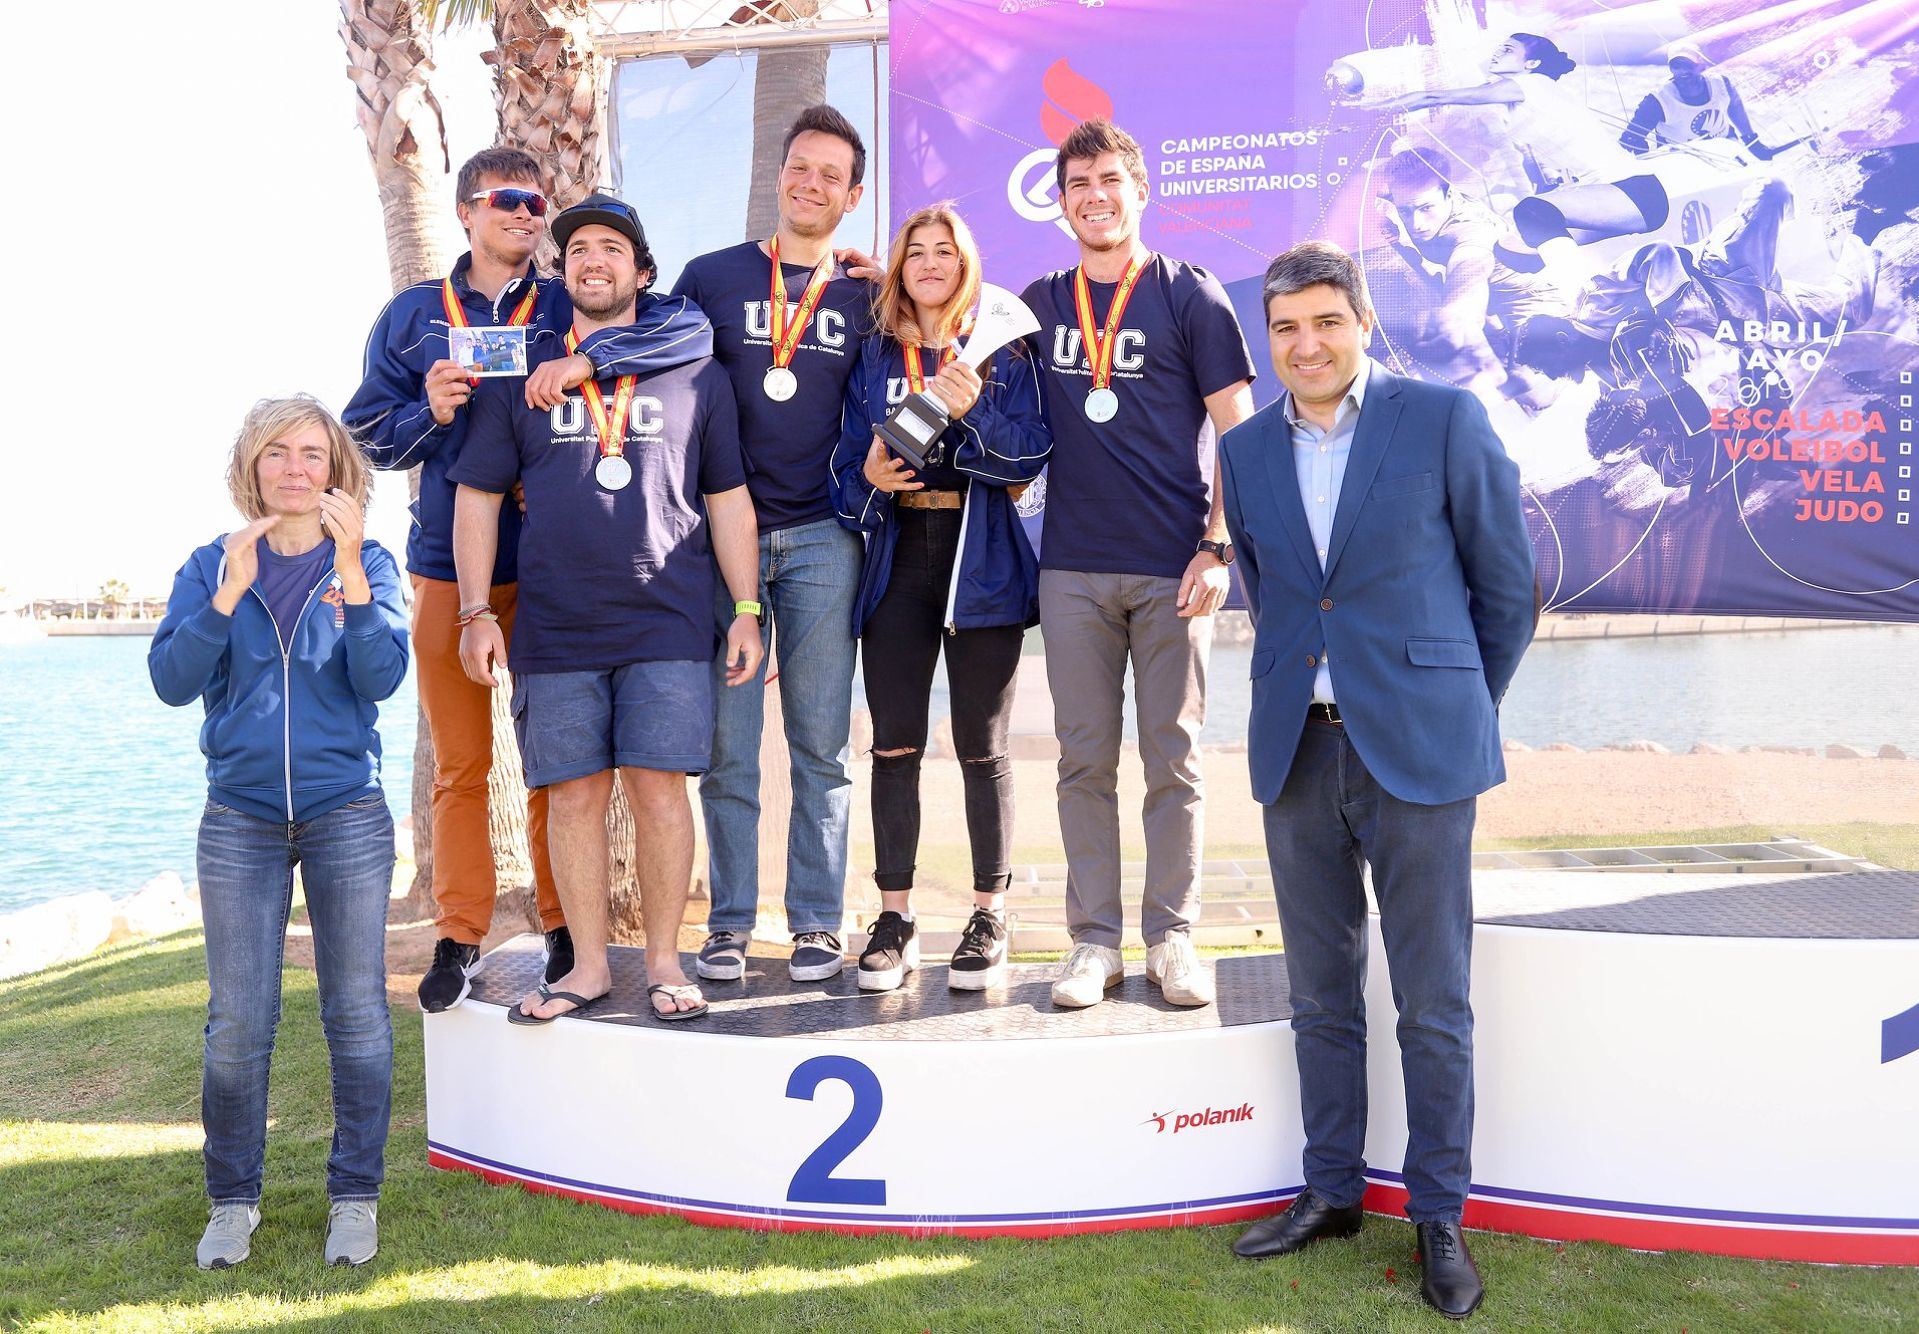 Carlos Ordóñez runner-up of Spain sailing 2019 with the UPC